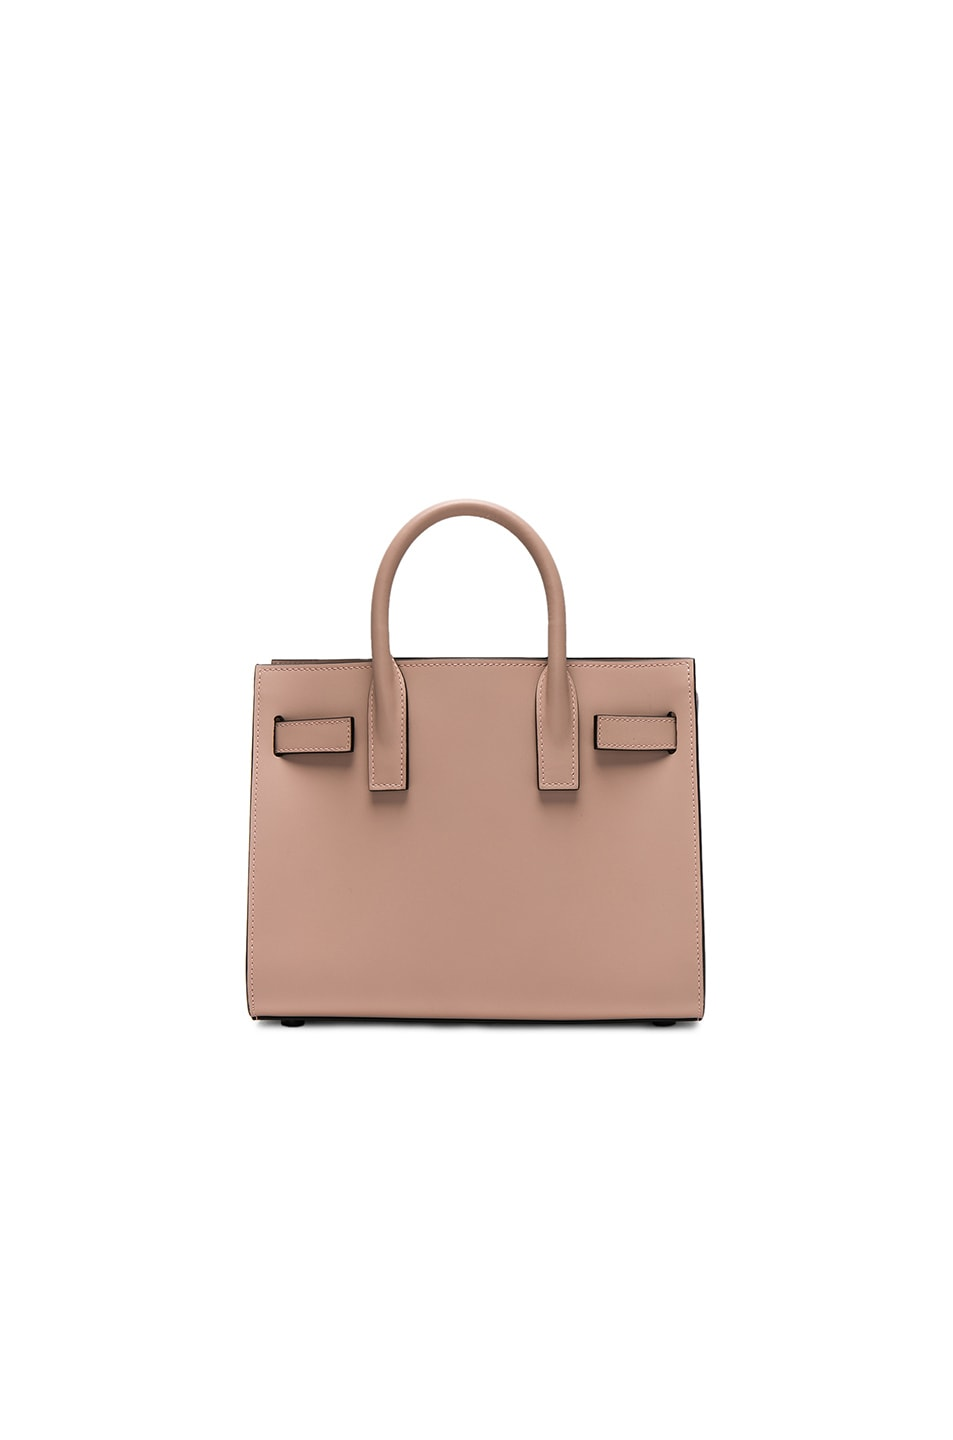 Image 2 of Saint Laurent Nano Double Face Leather in Nude Rose